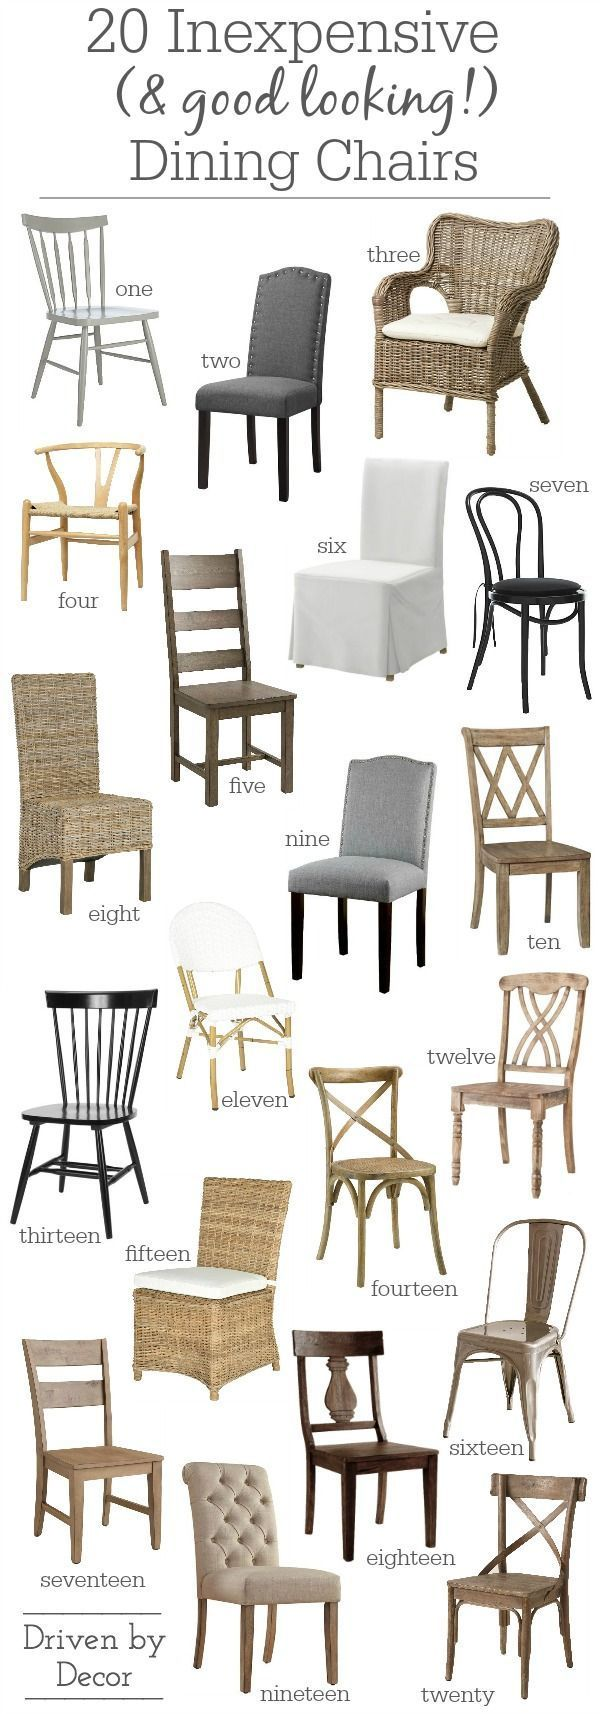 Best 25 Dining room chairs ideas only on Pinterest Formal